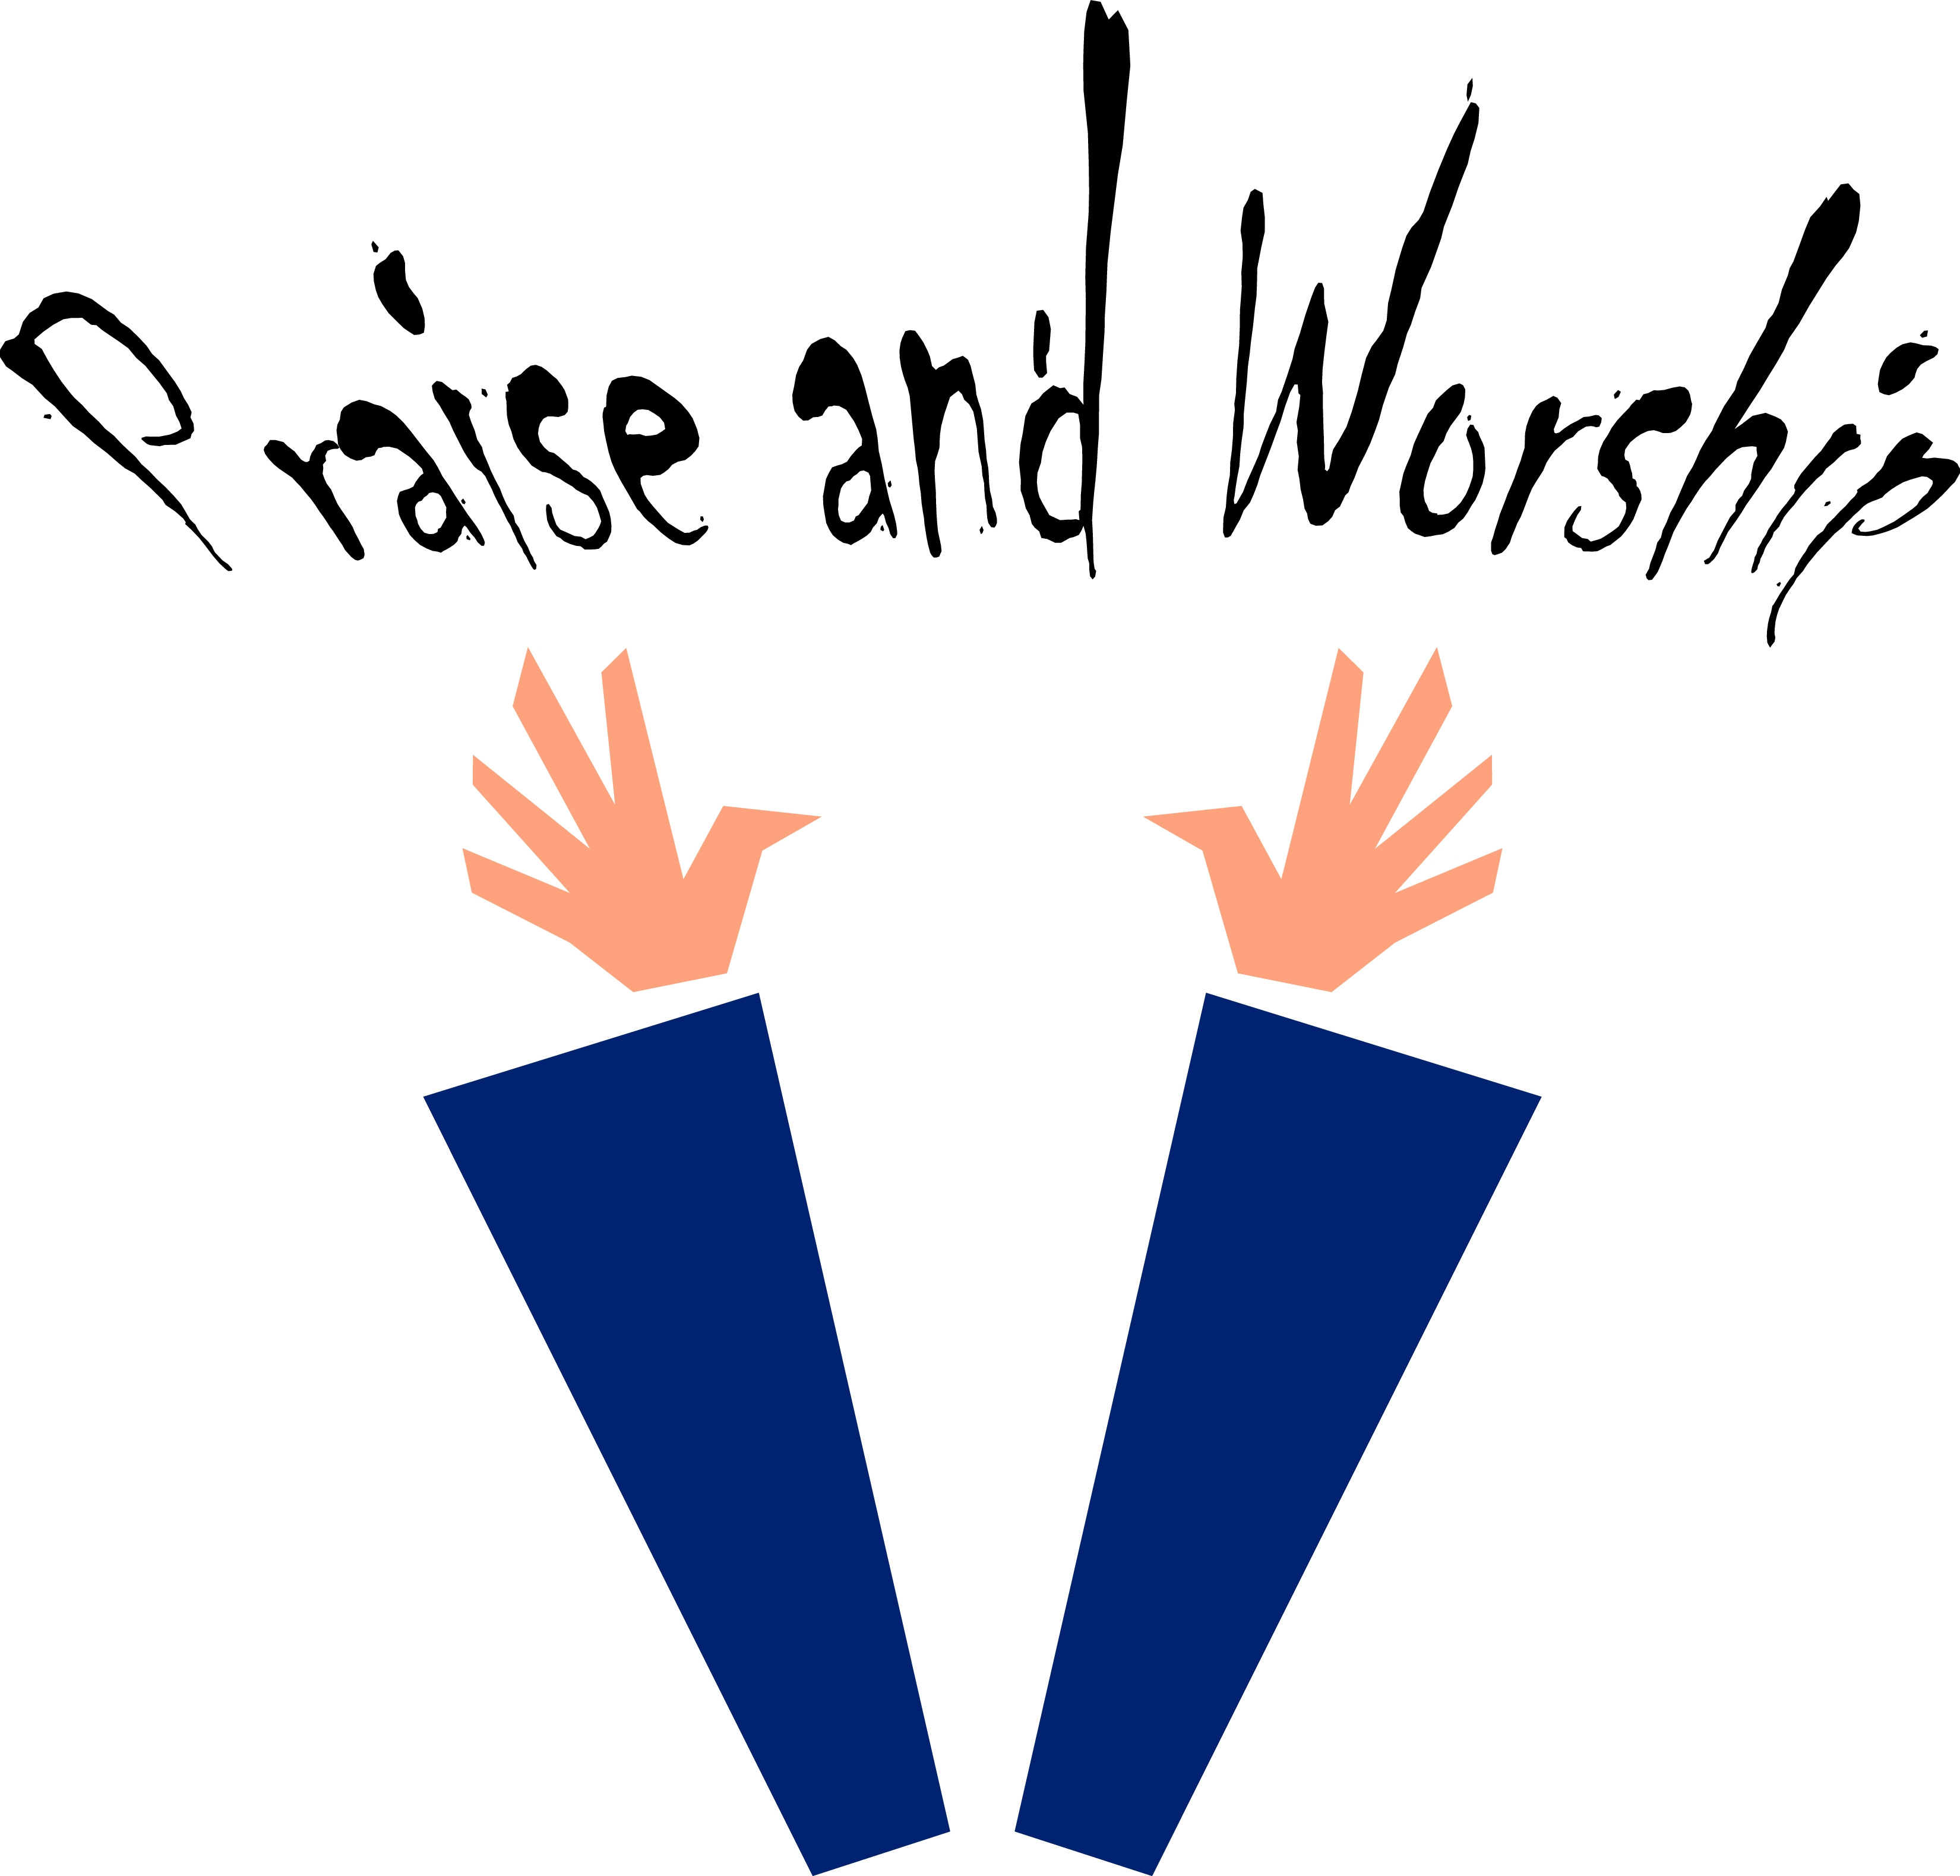 Praise and Worship Clip Art Free